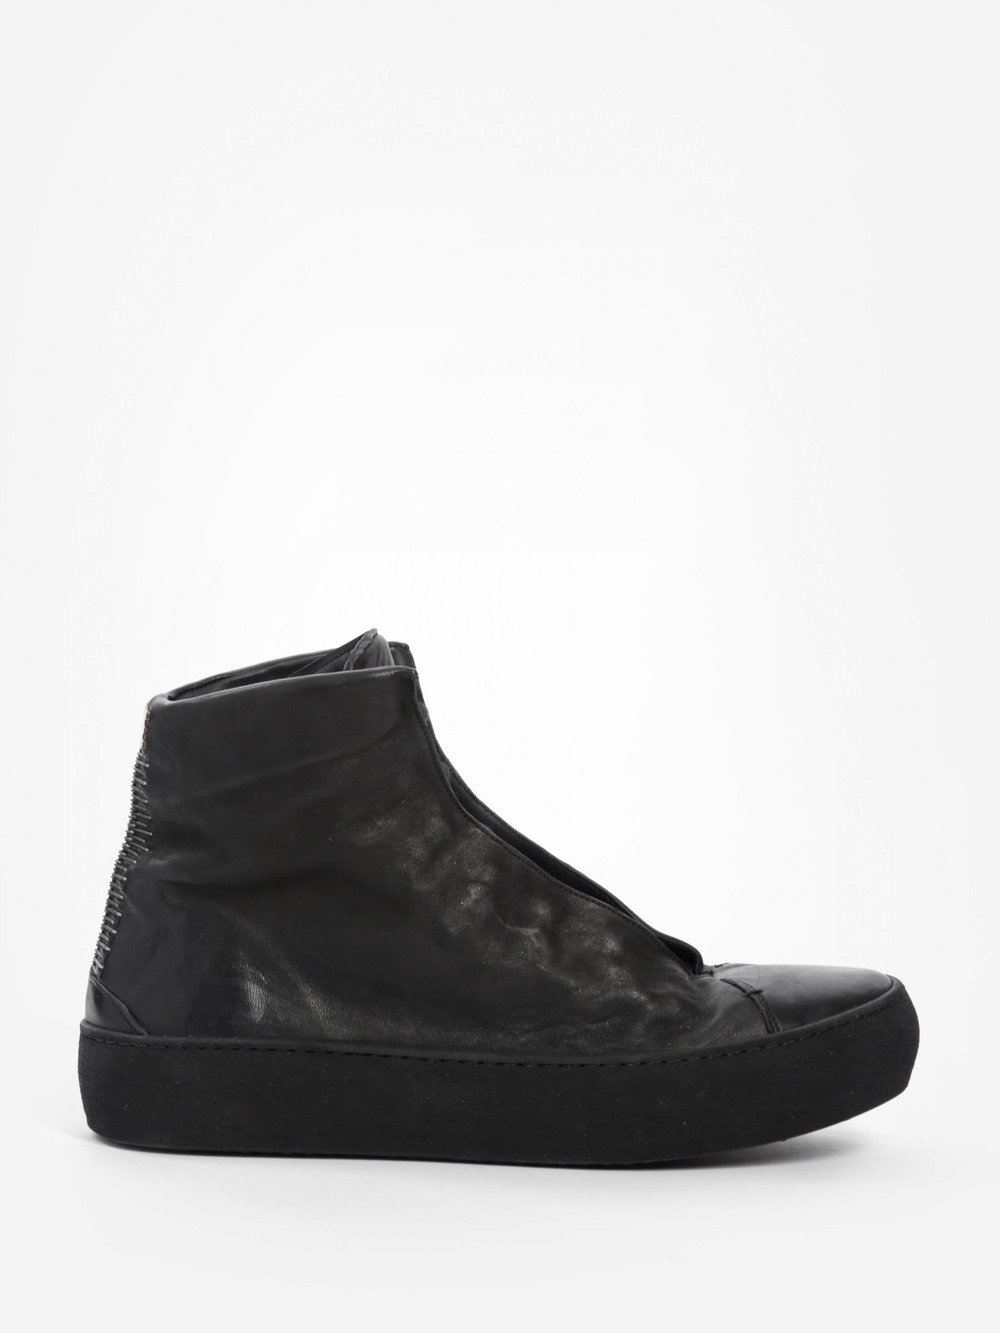 ISAAC SELLAM MEN'S BLACK HIGH SNEAKERS